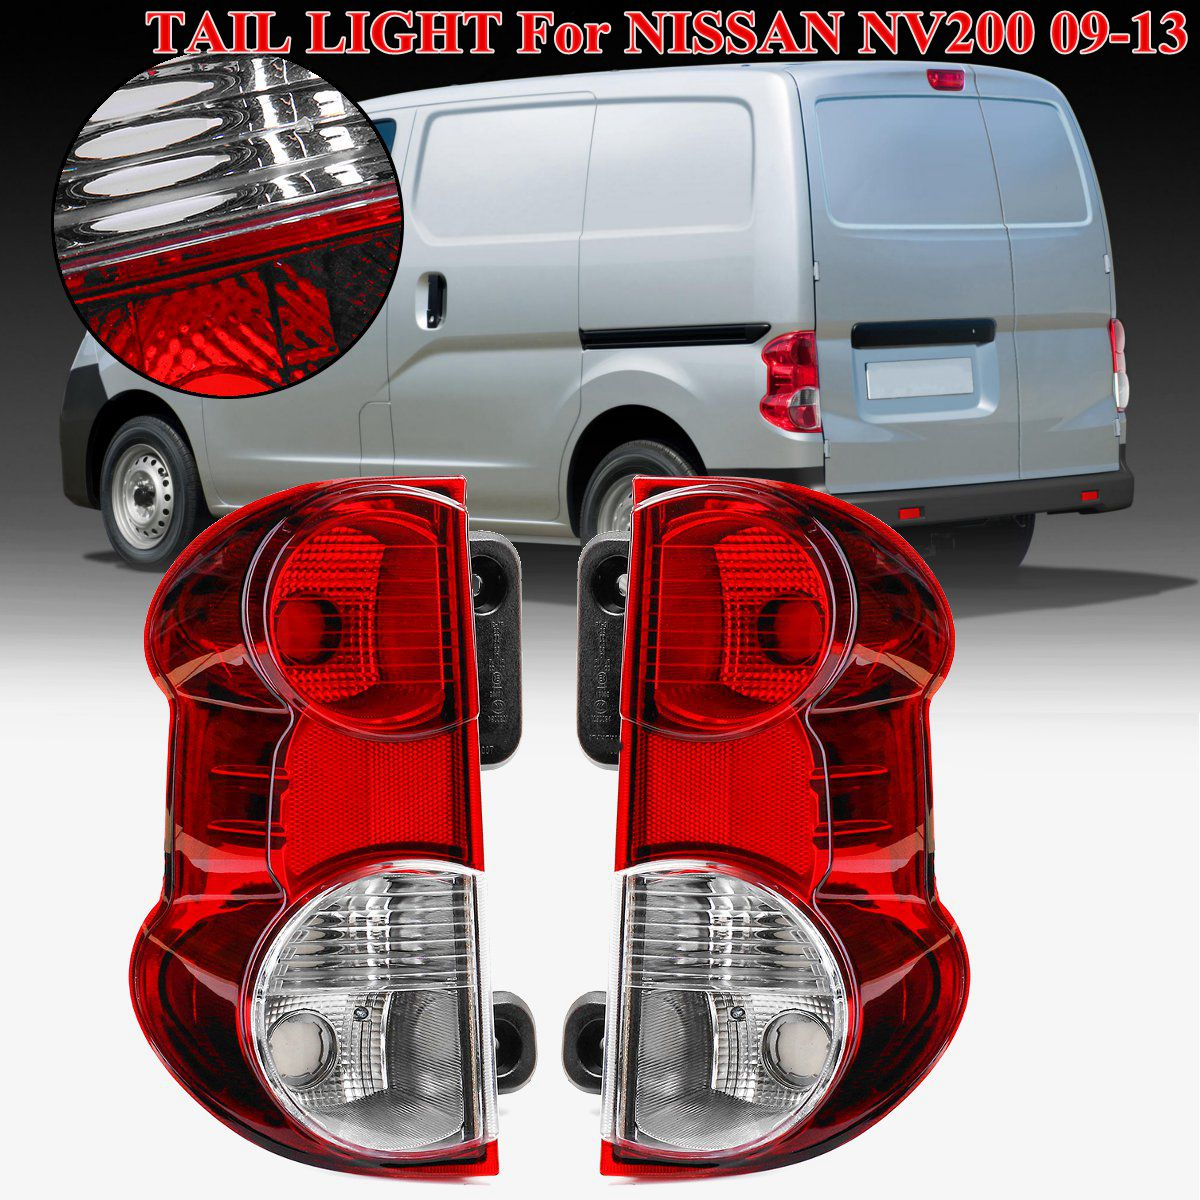 For NISSAN NV200 Tail Light Rear brake light Rear warning lamp 26550-JX00A 26555-JX31A 1Pair Red Rear Tail Light Brake Lamp rear brake light tail light stop light taillight warning light lamp for suzuki swift 2005 2016